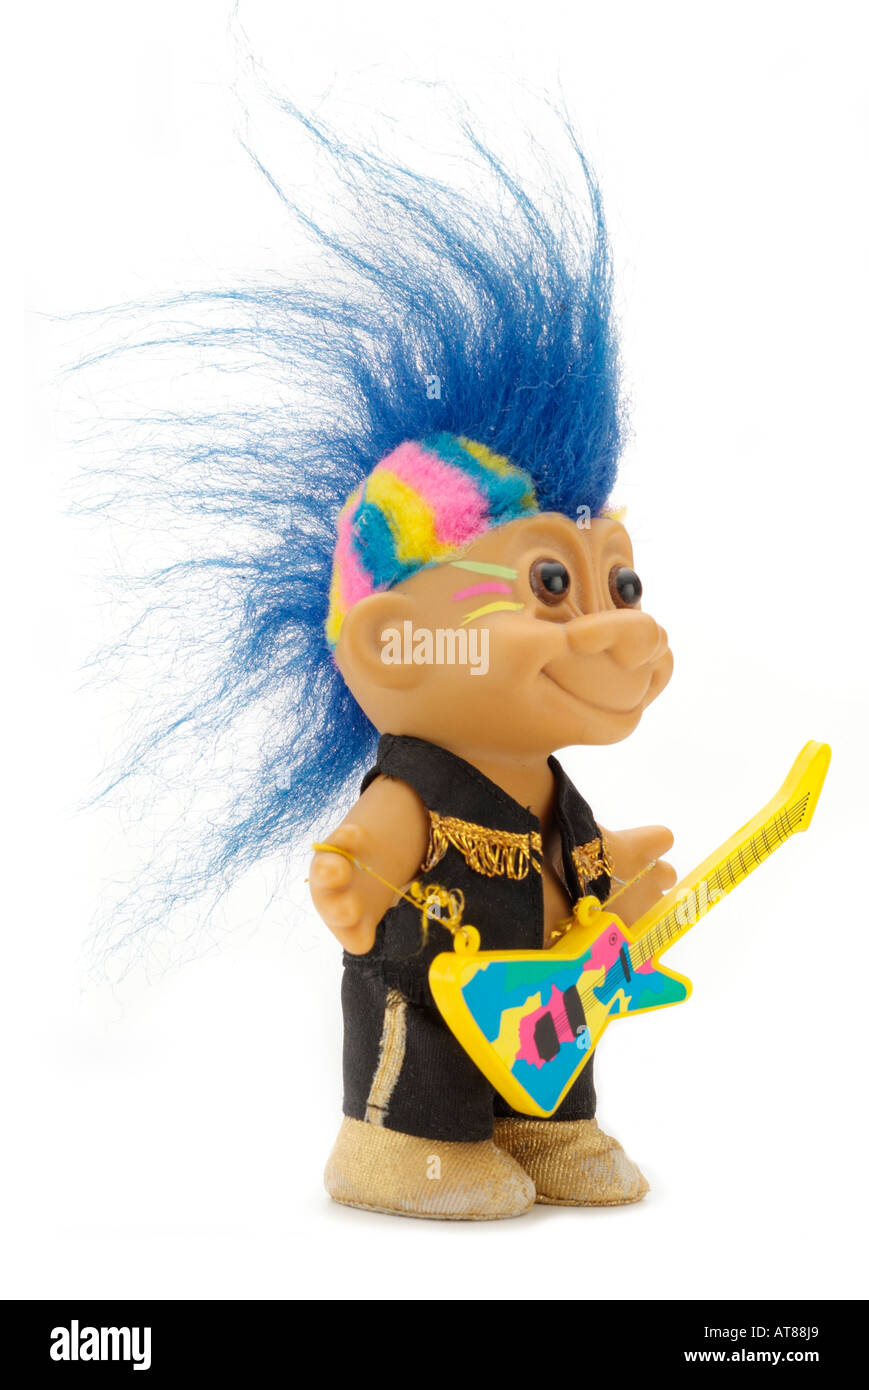 Remarkable, funny troll dolls